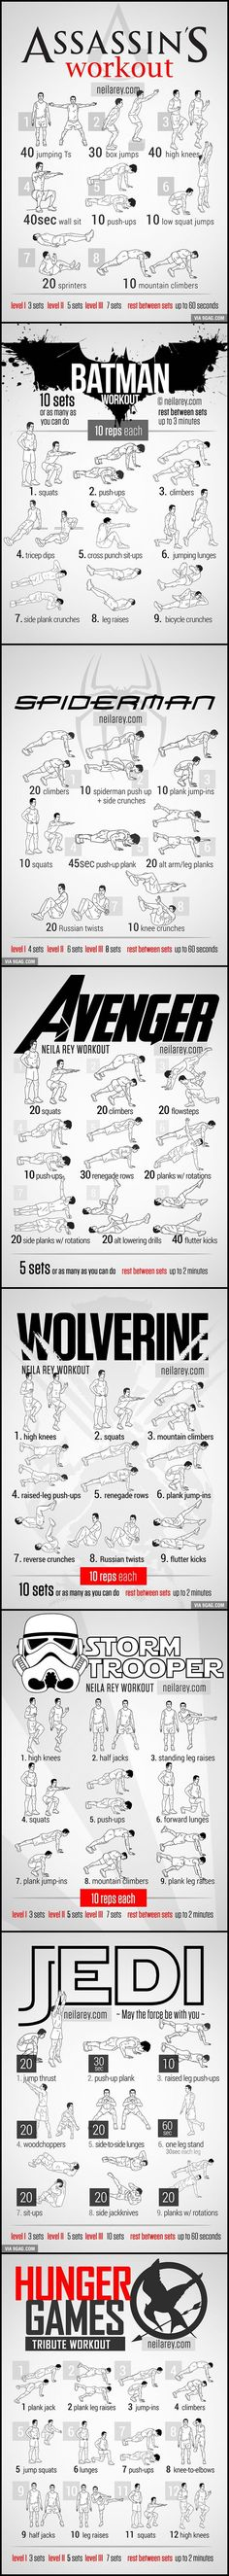 Super Heroes workout regimen.